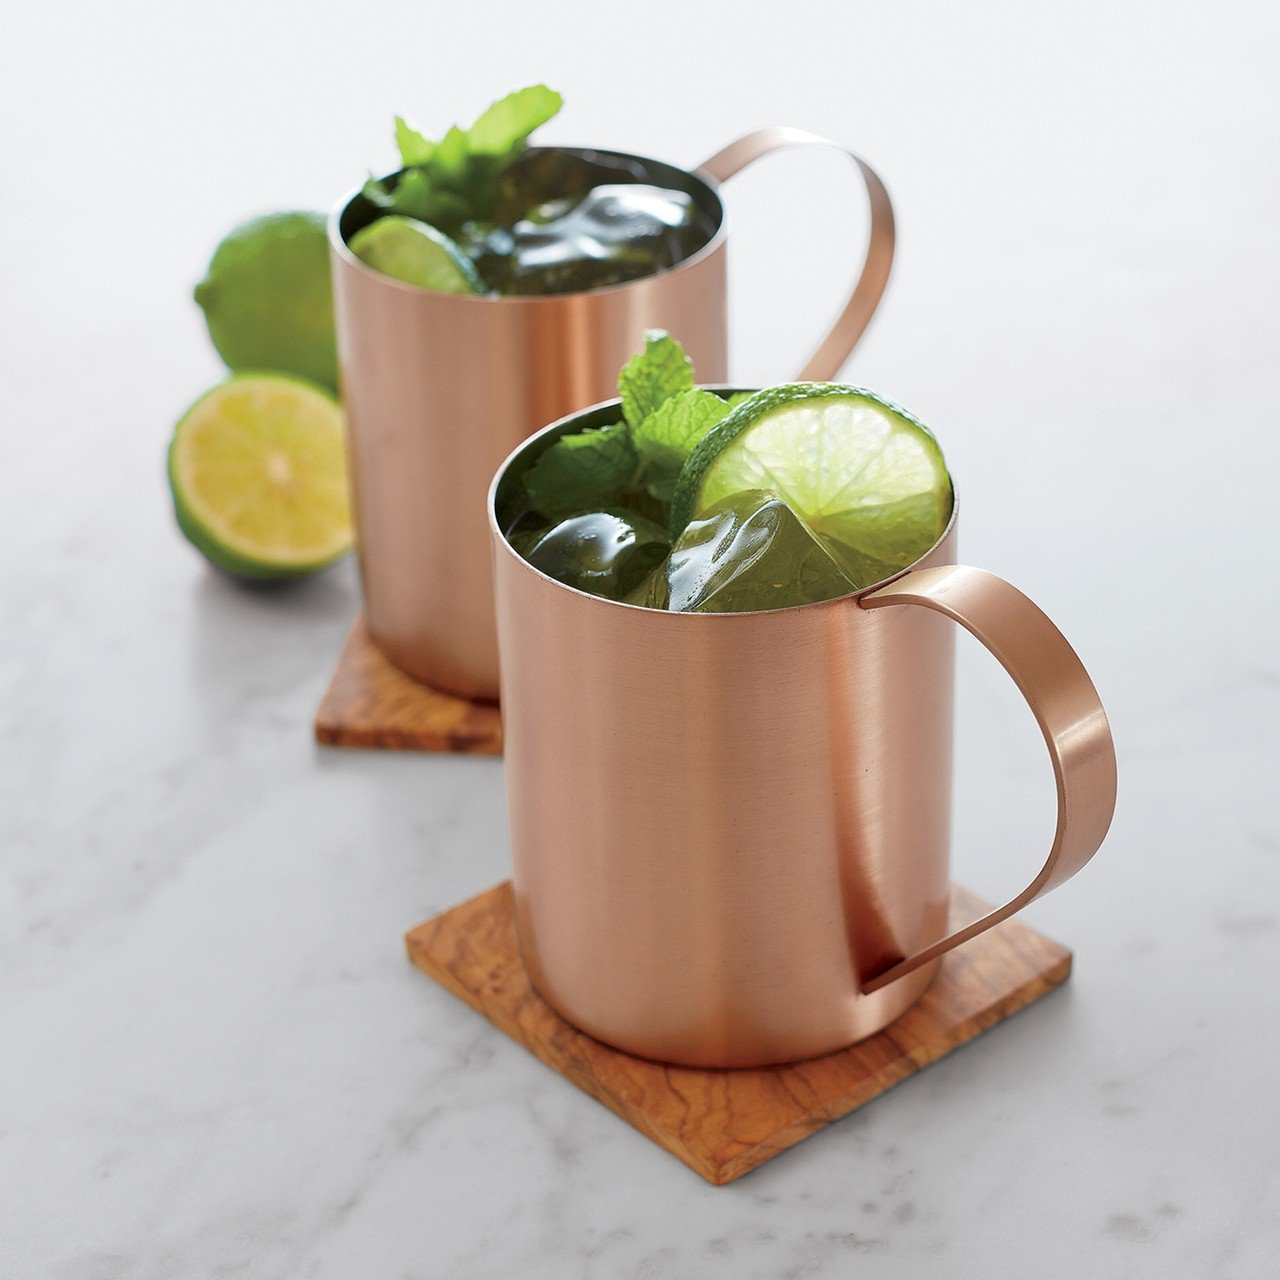 Moscow Mule 莫斯科騾子杯。 Crate and Barrel/提供